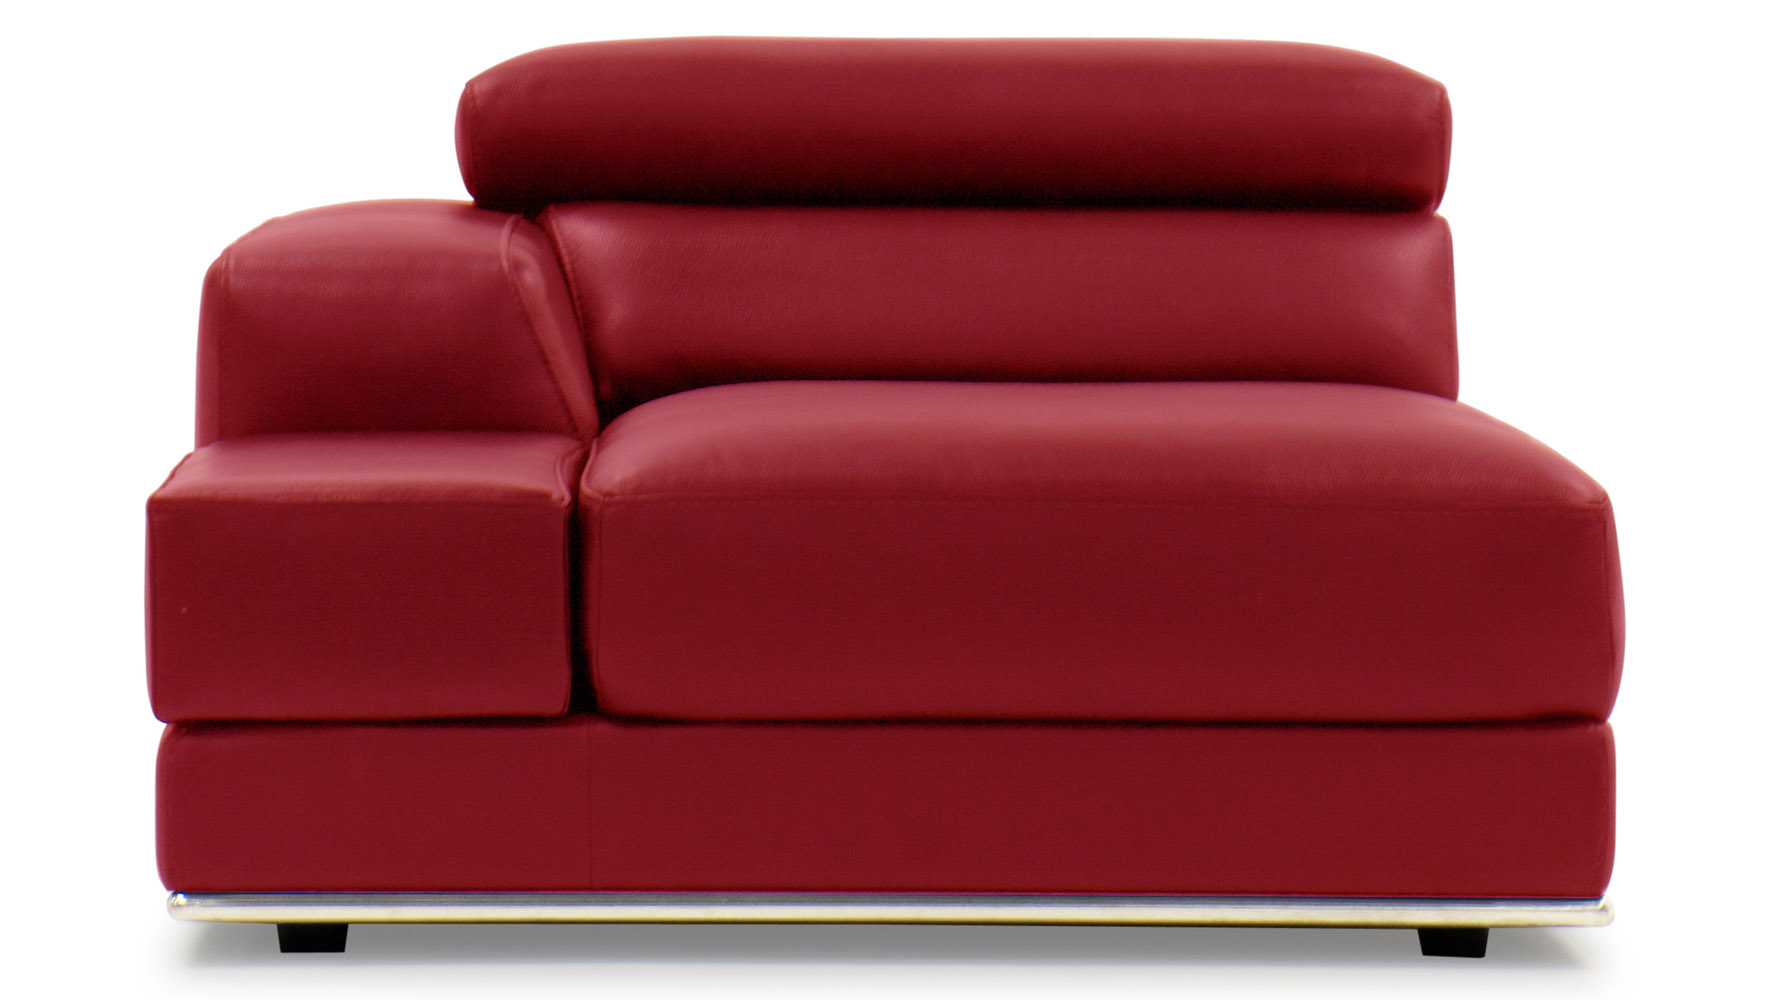 futon futons orange beds linen collections org sleeper leather plush sofa modern stg sofamania in verne red